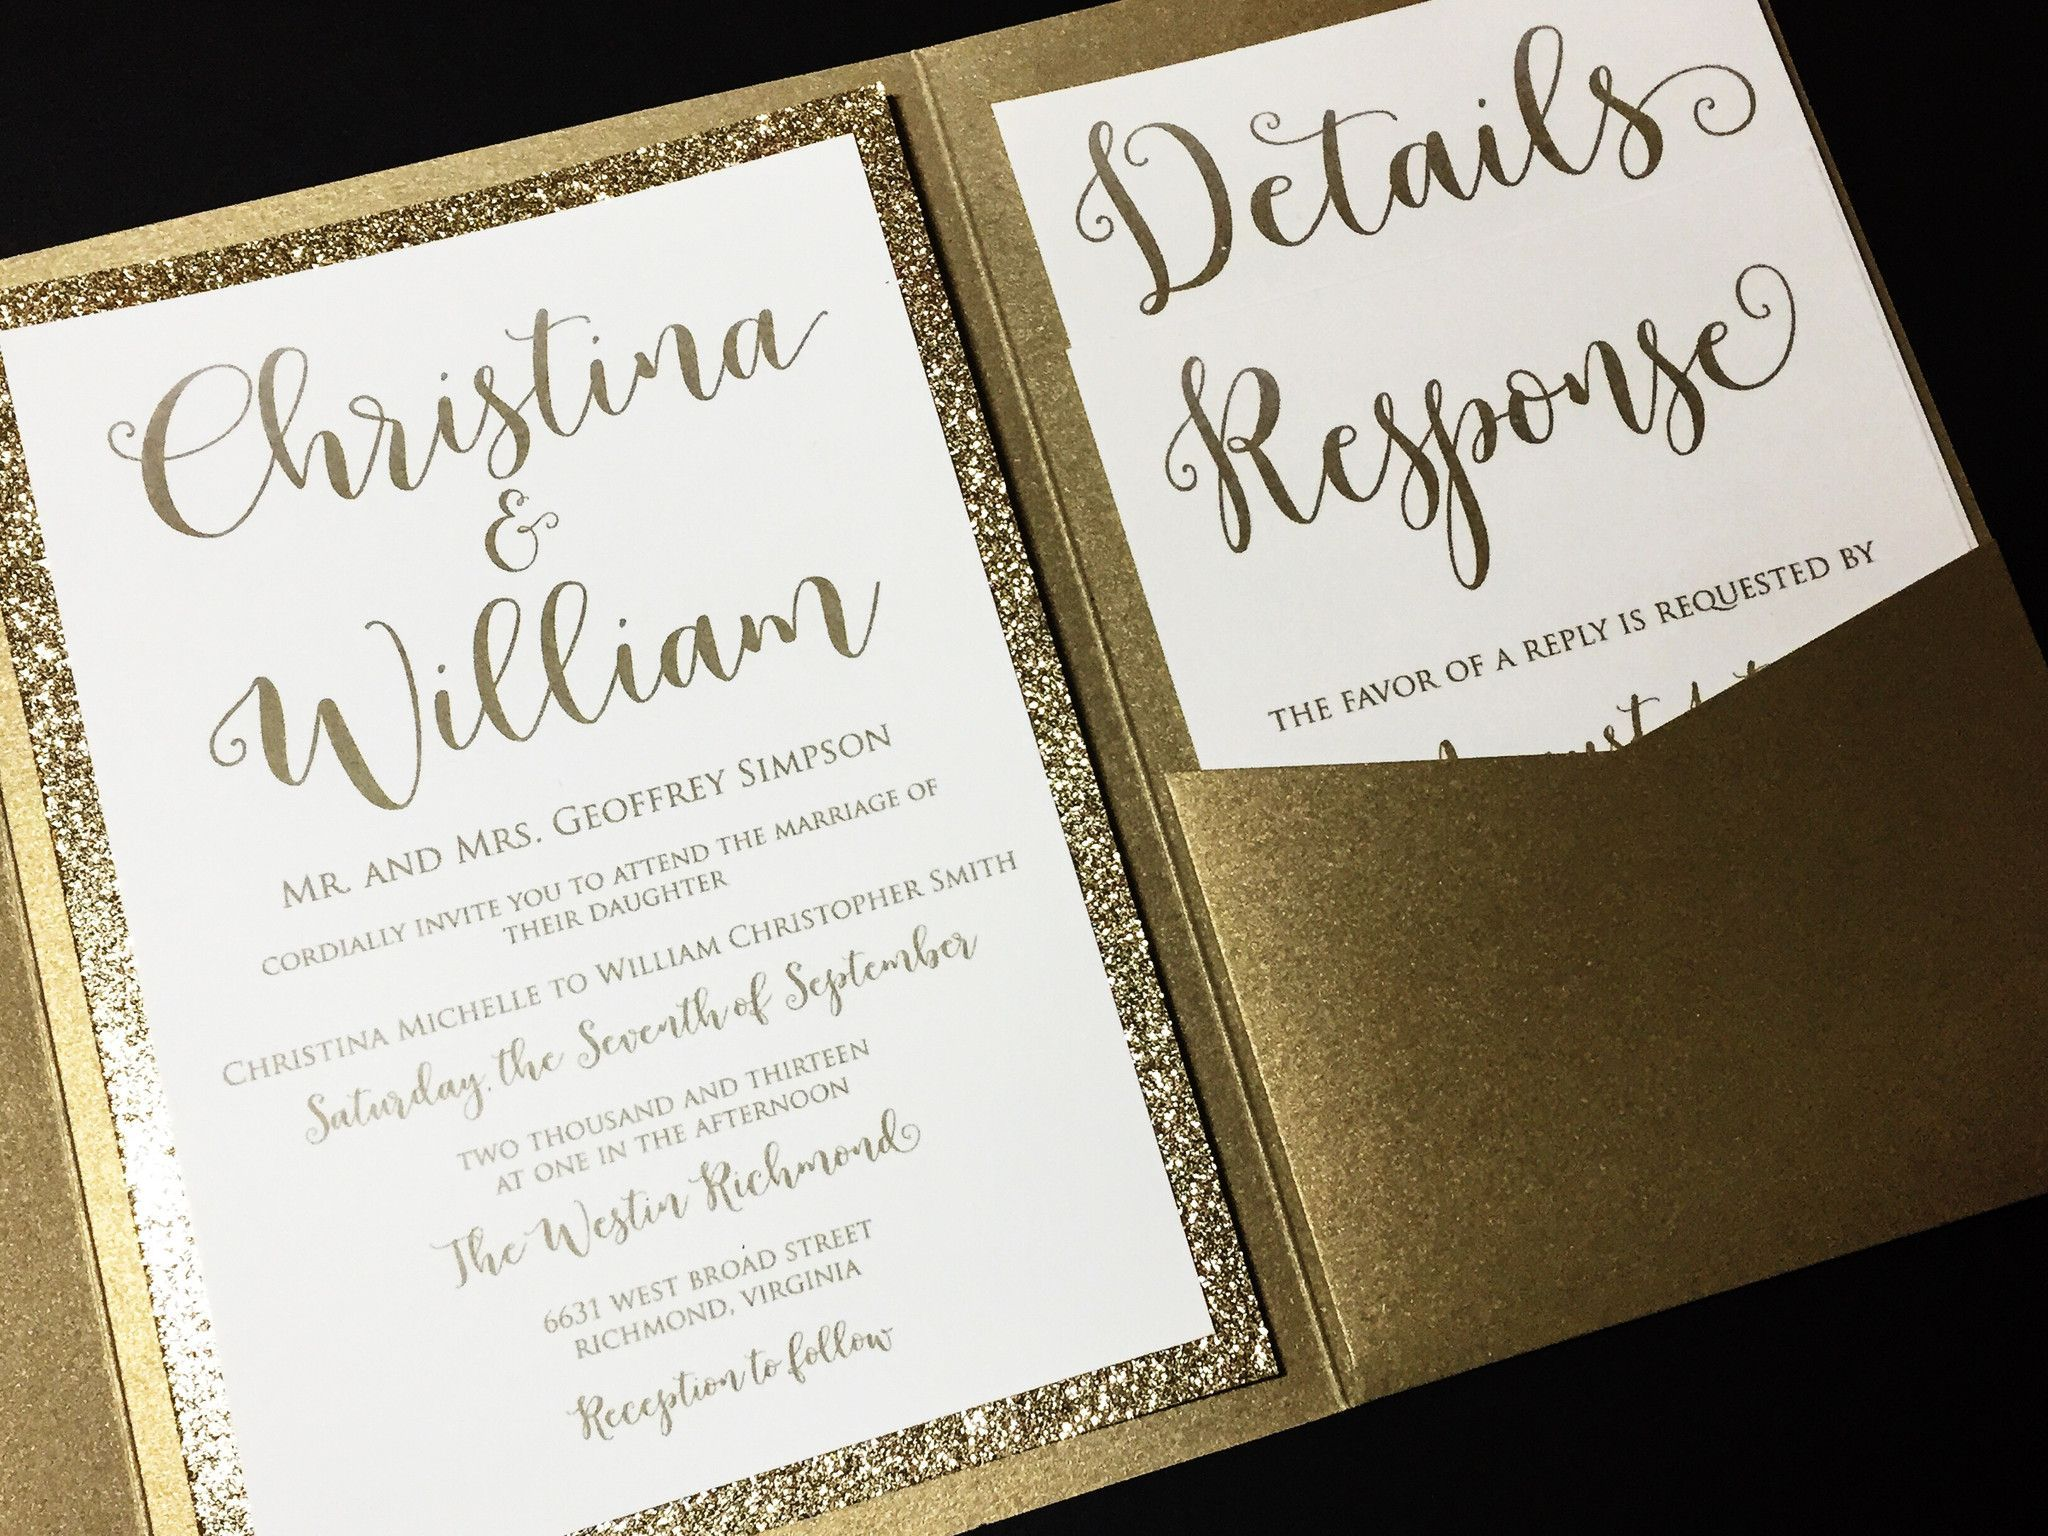 Best 25 Sample of wedding invitation ideas – Sample Formal Wedding Invitation Wording